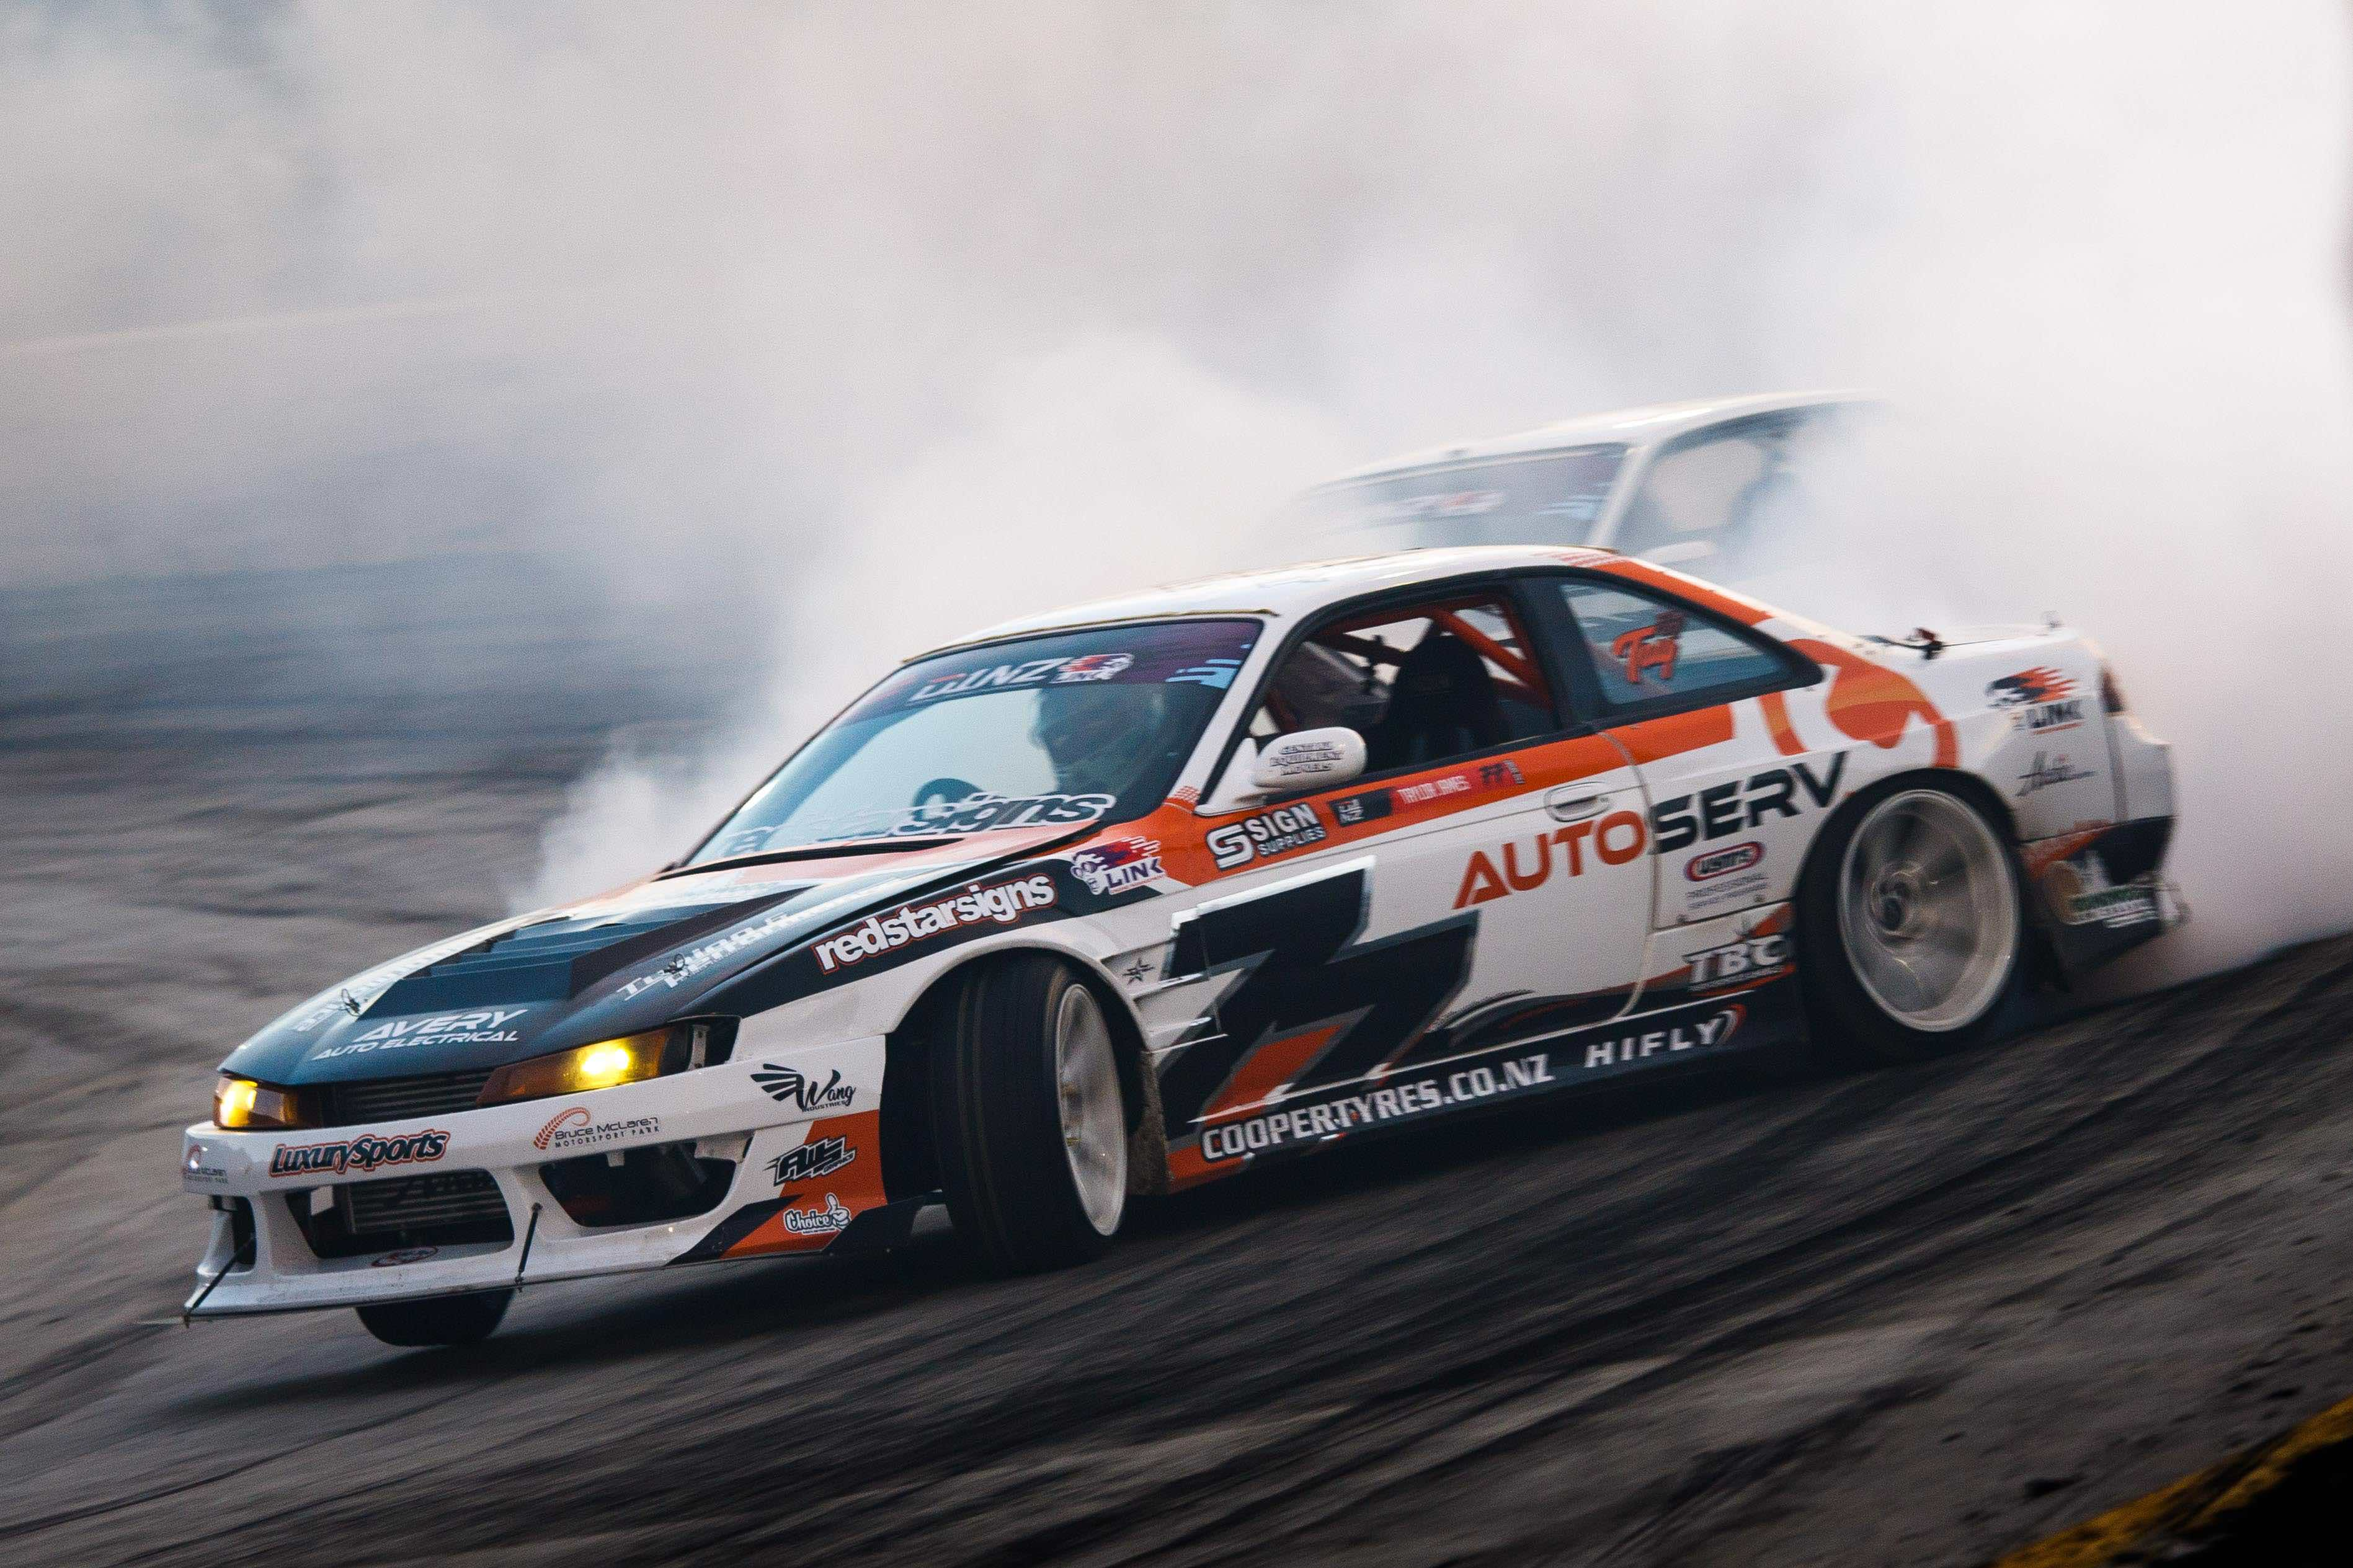 TAYLOR JAMES FINISHES OFF THE JOB FOR CENTRAL DRIFT TEAM